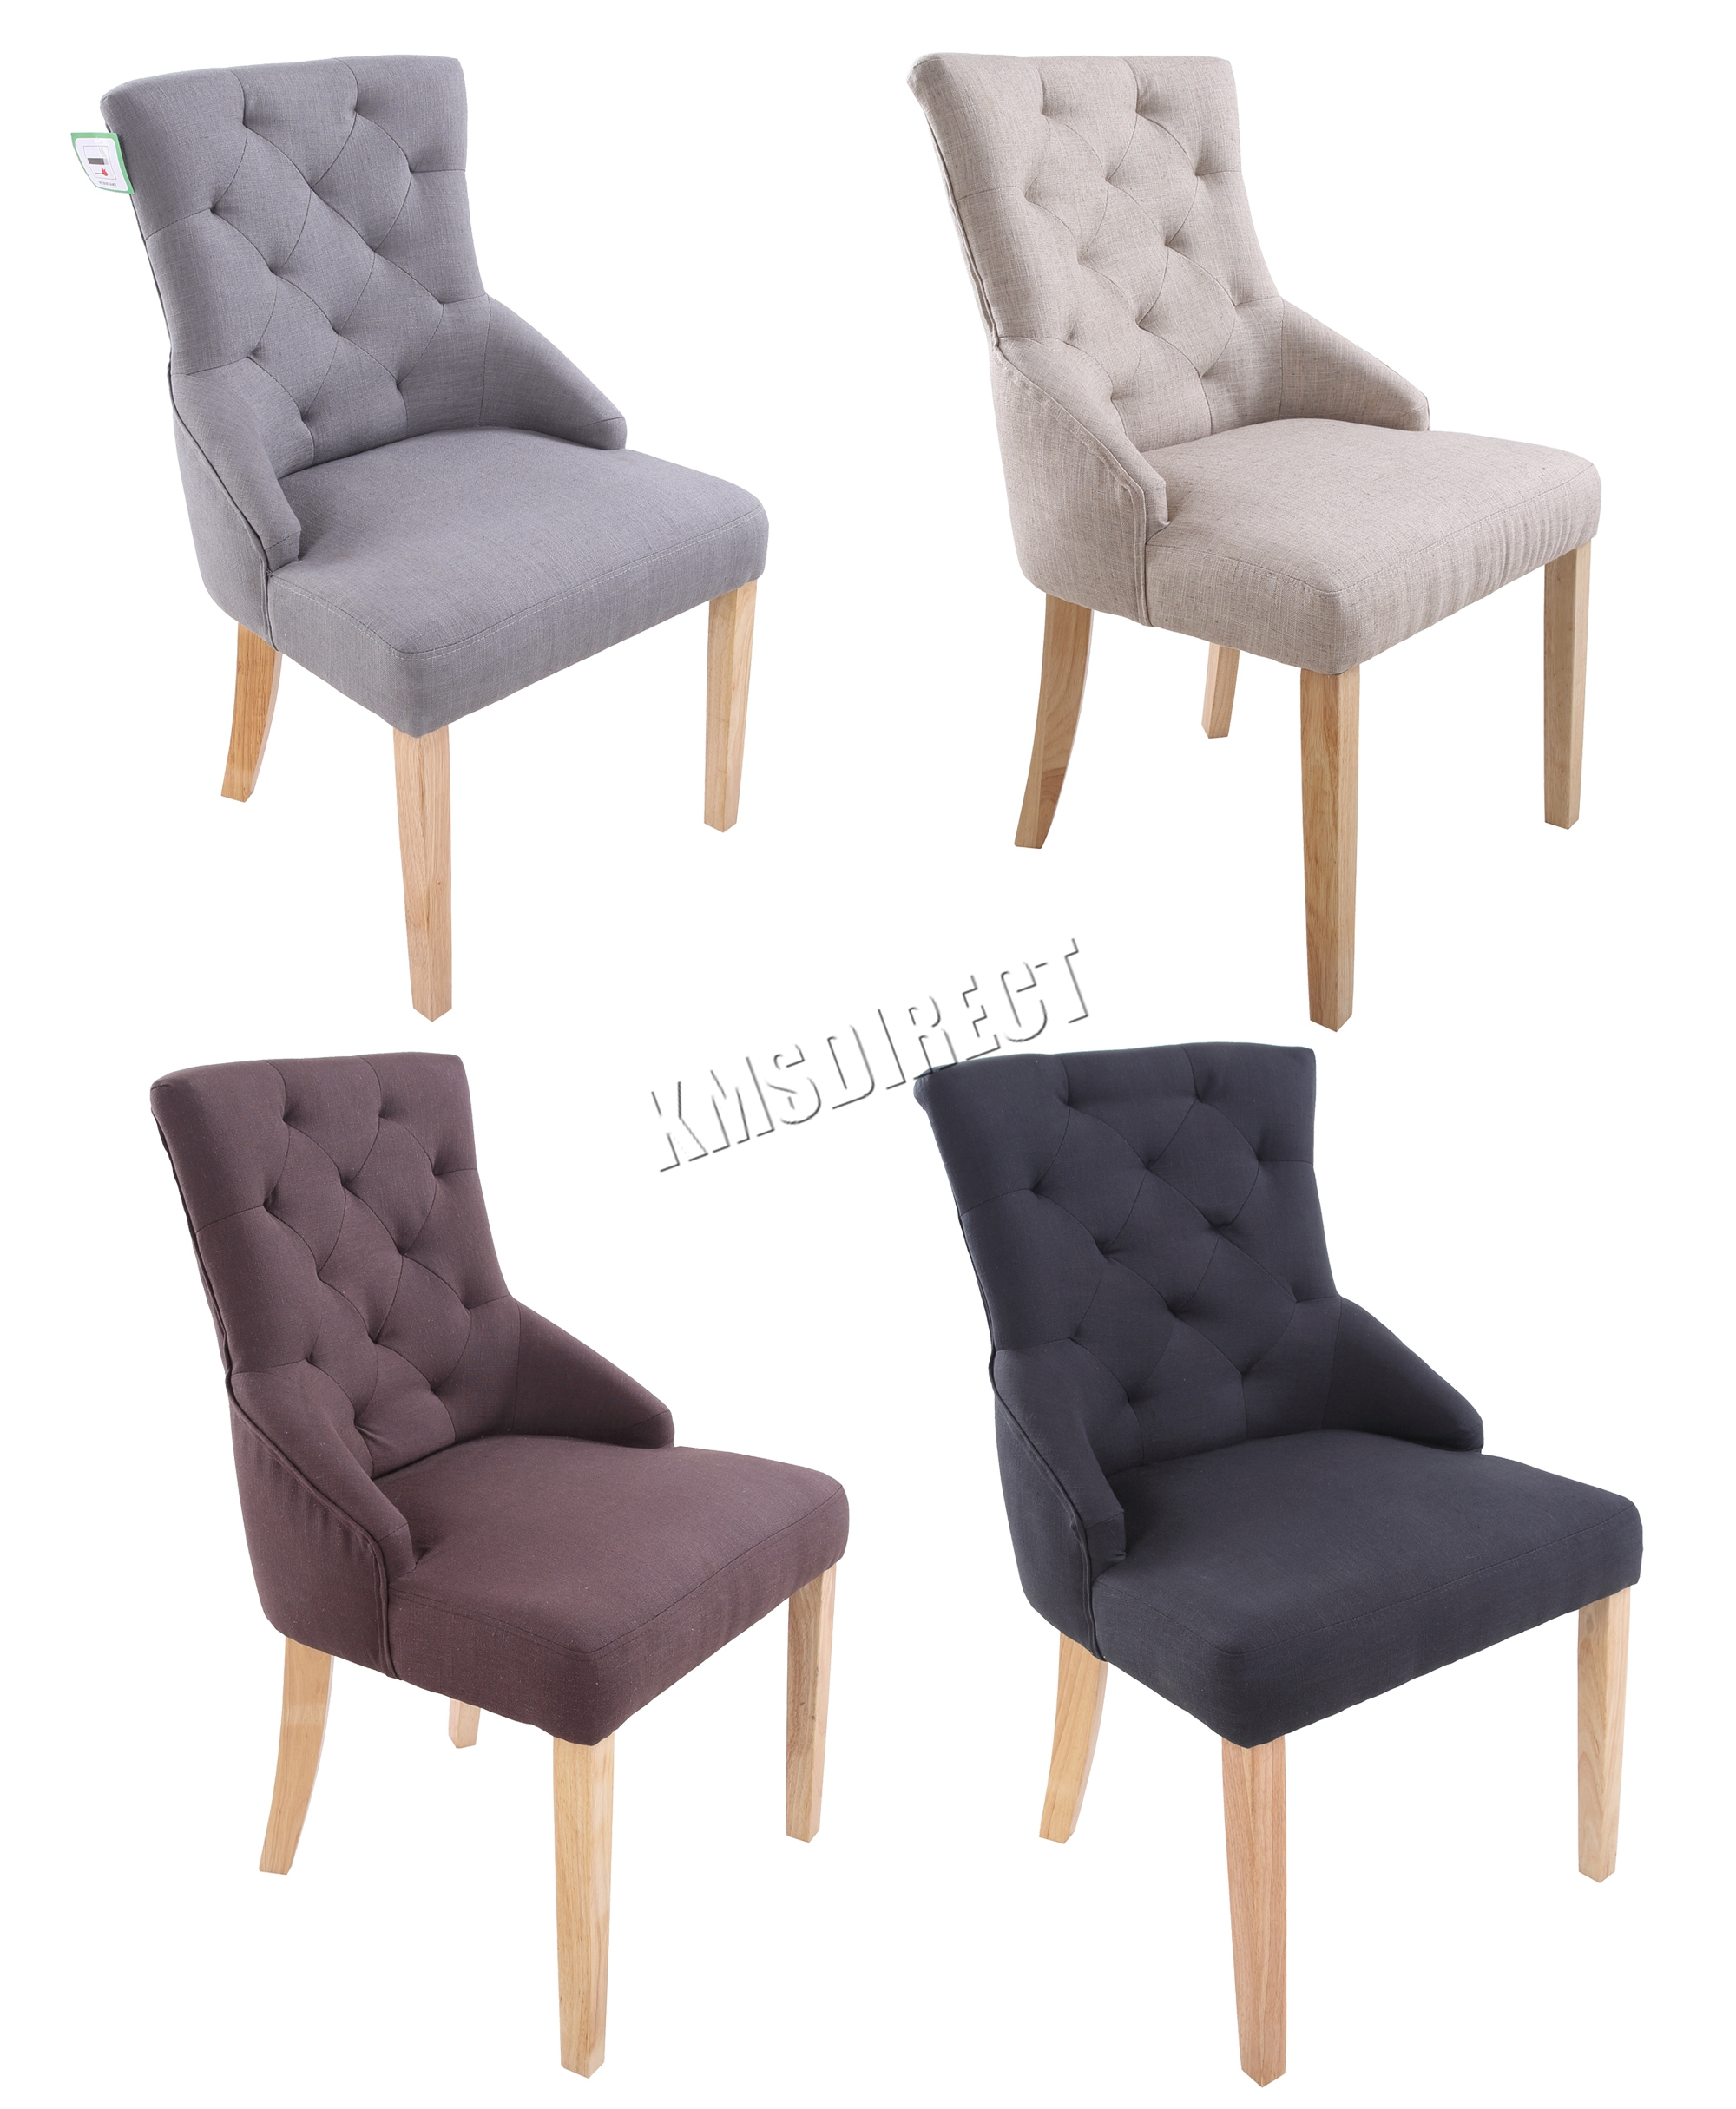 Rattan Dining Chair | Tufted Dining Chair | Dining Chair Slipcover